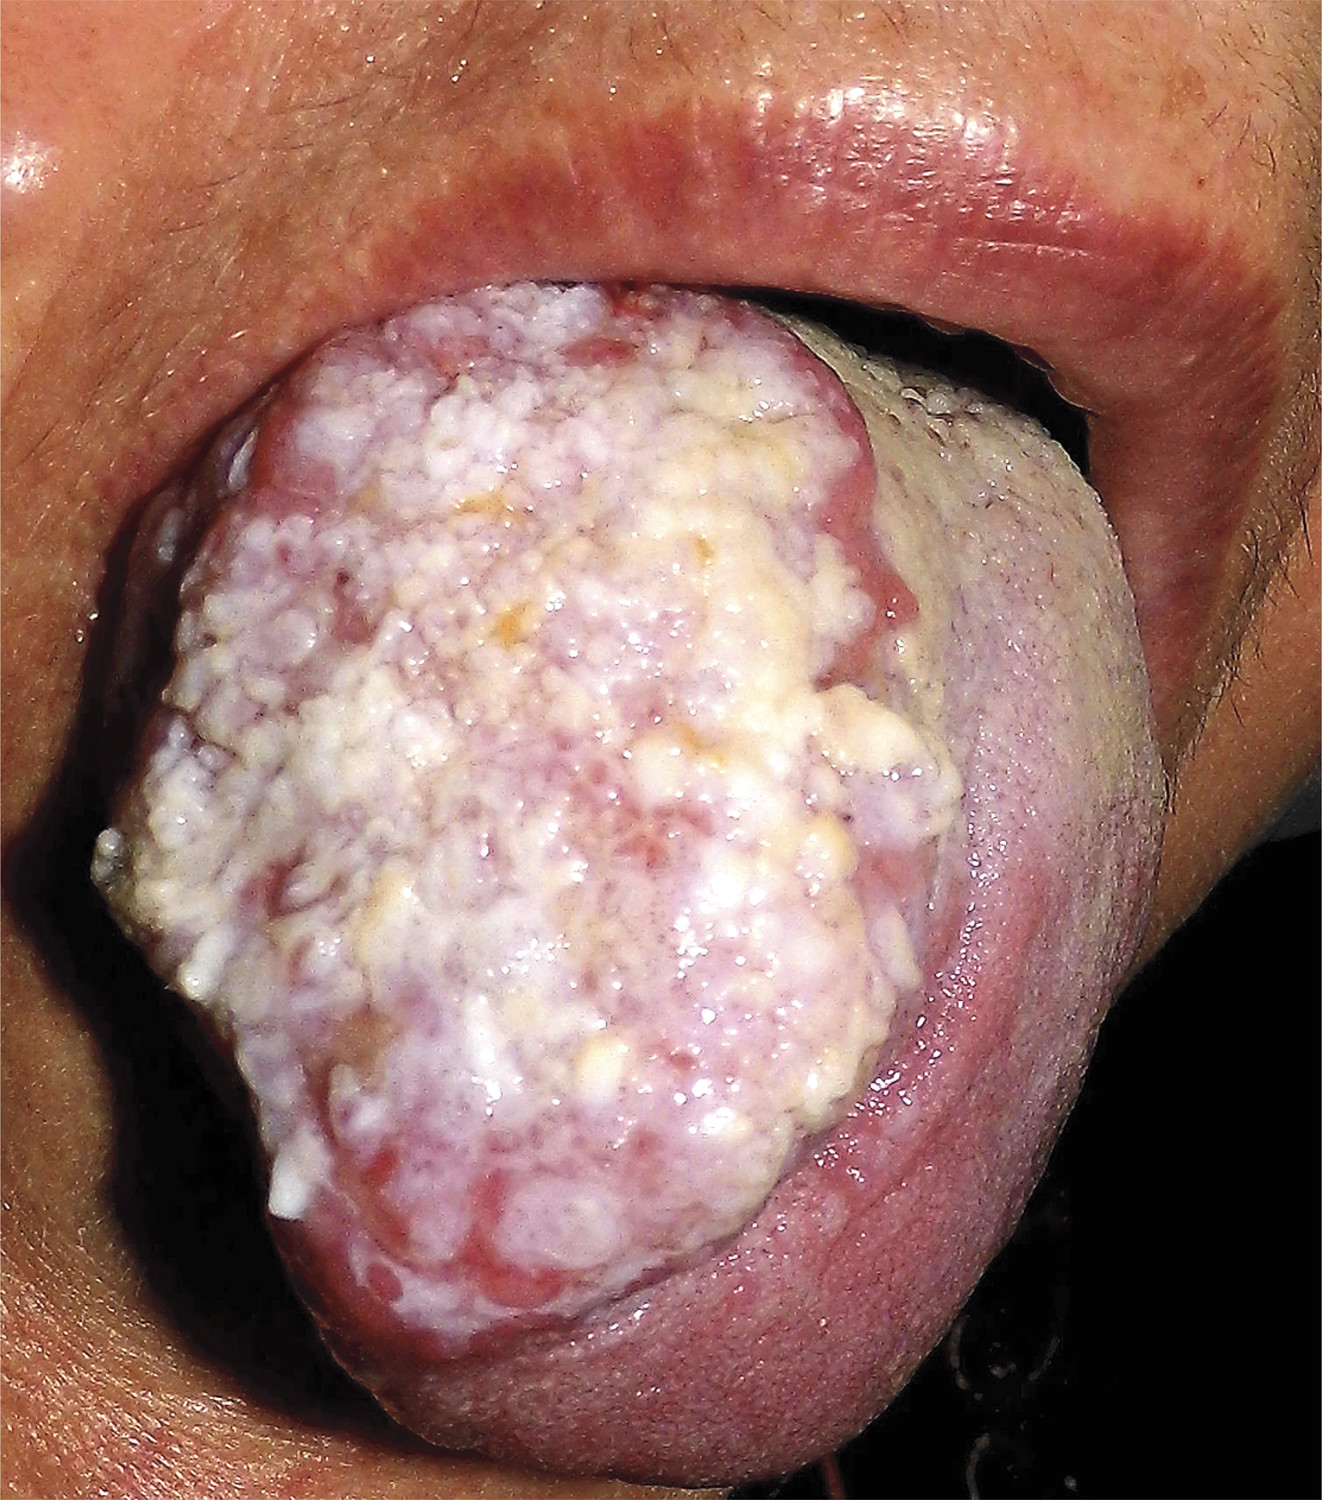 Hpv Tongue Lesions Verrucous Tongue Lesio...